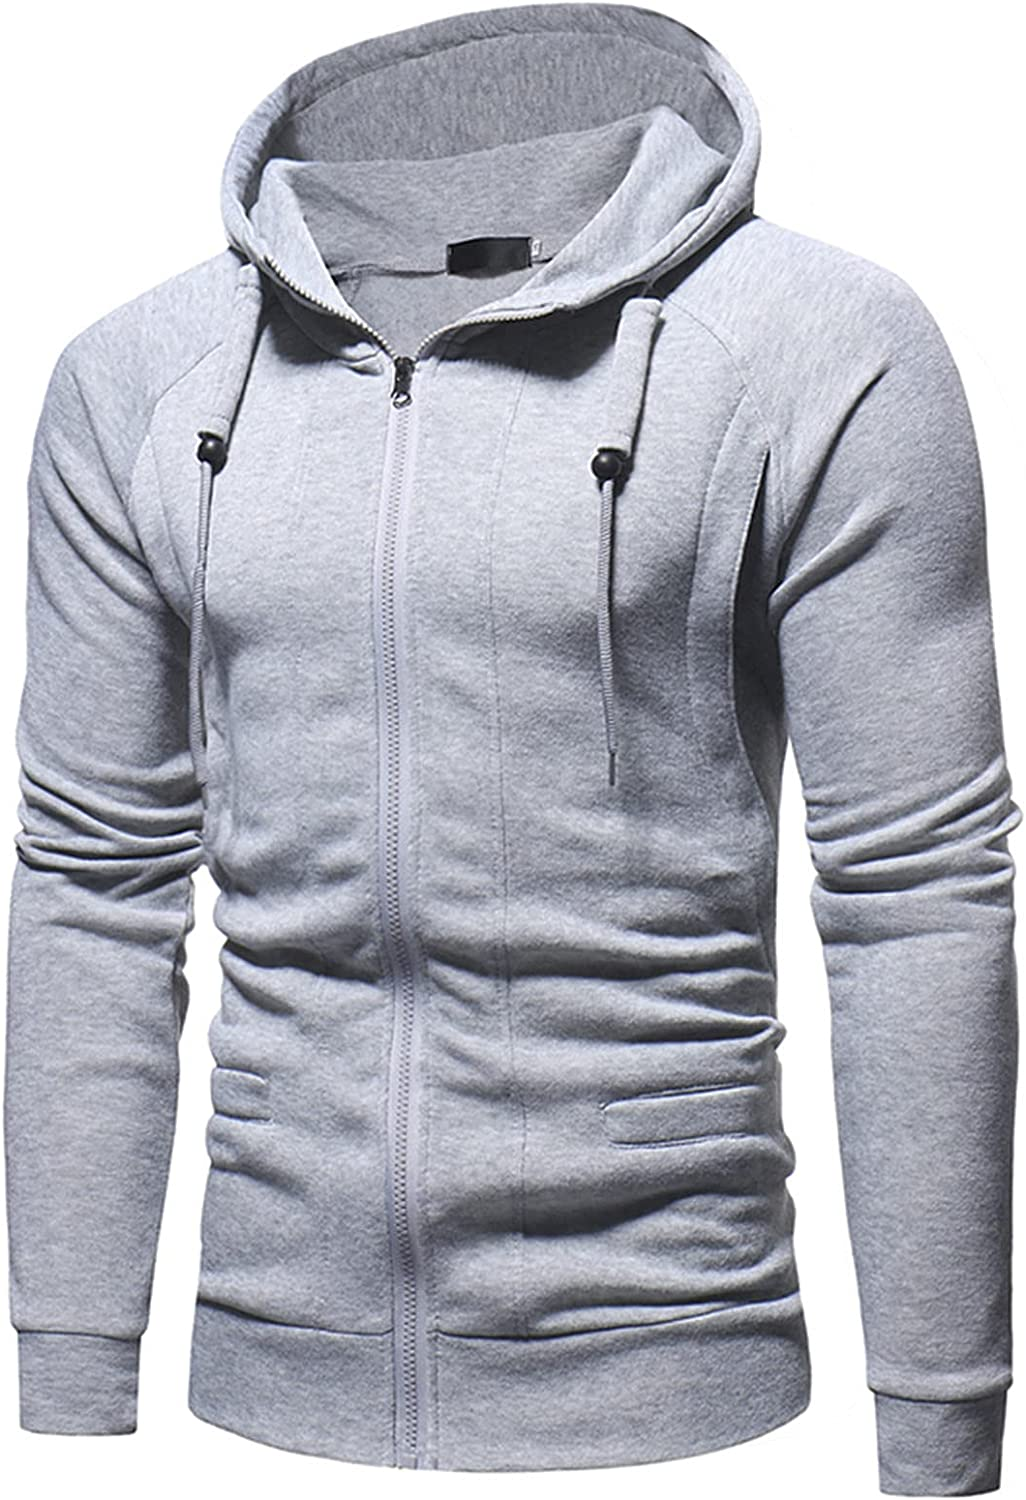 HONGJ Hoodies for Mens, Zipper Tether Solid Hooded Sweatshirts Men's Fall Slim Fit Workout Fitness Sports Casual Jackets